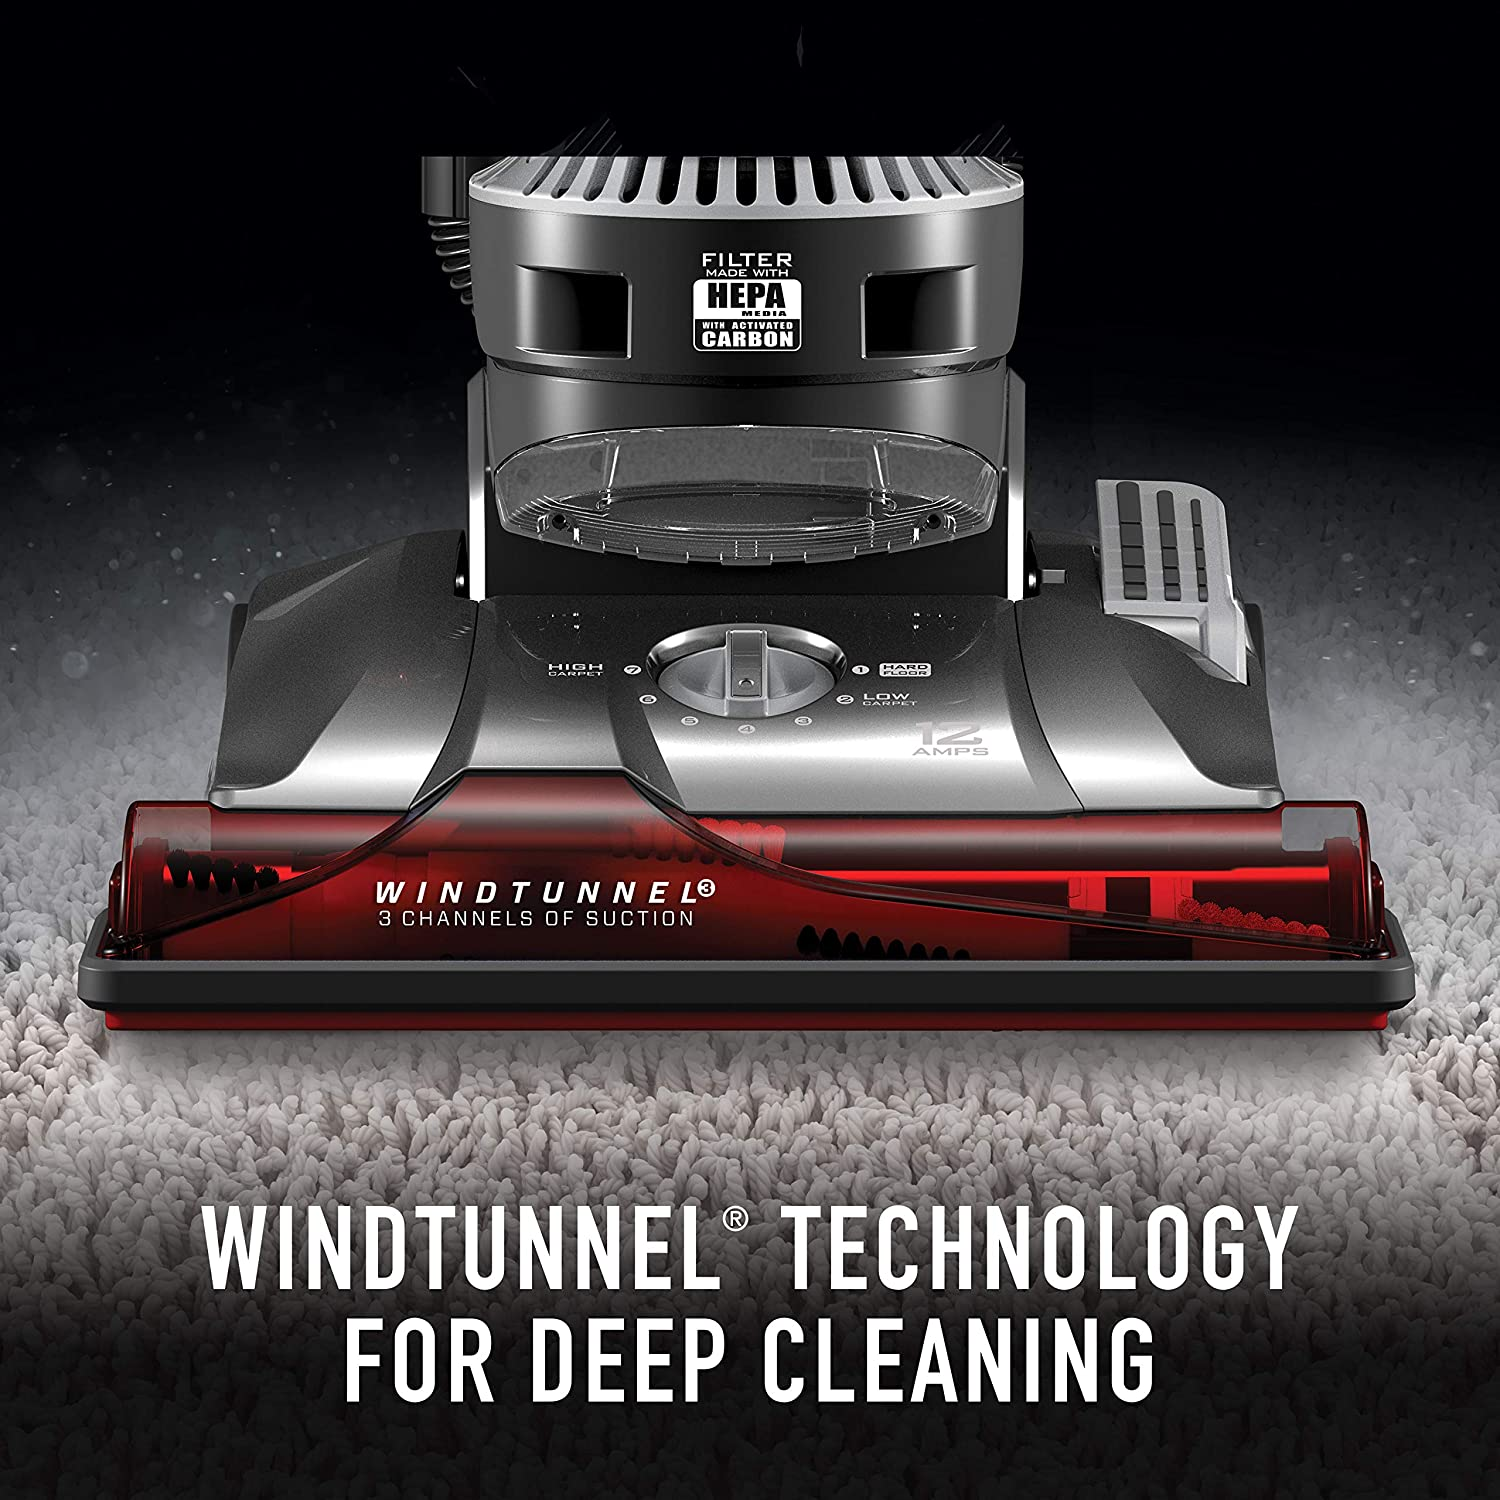 Amazon.com: Hoover WindTunnel - Aspiradora vertical para ...